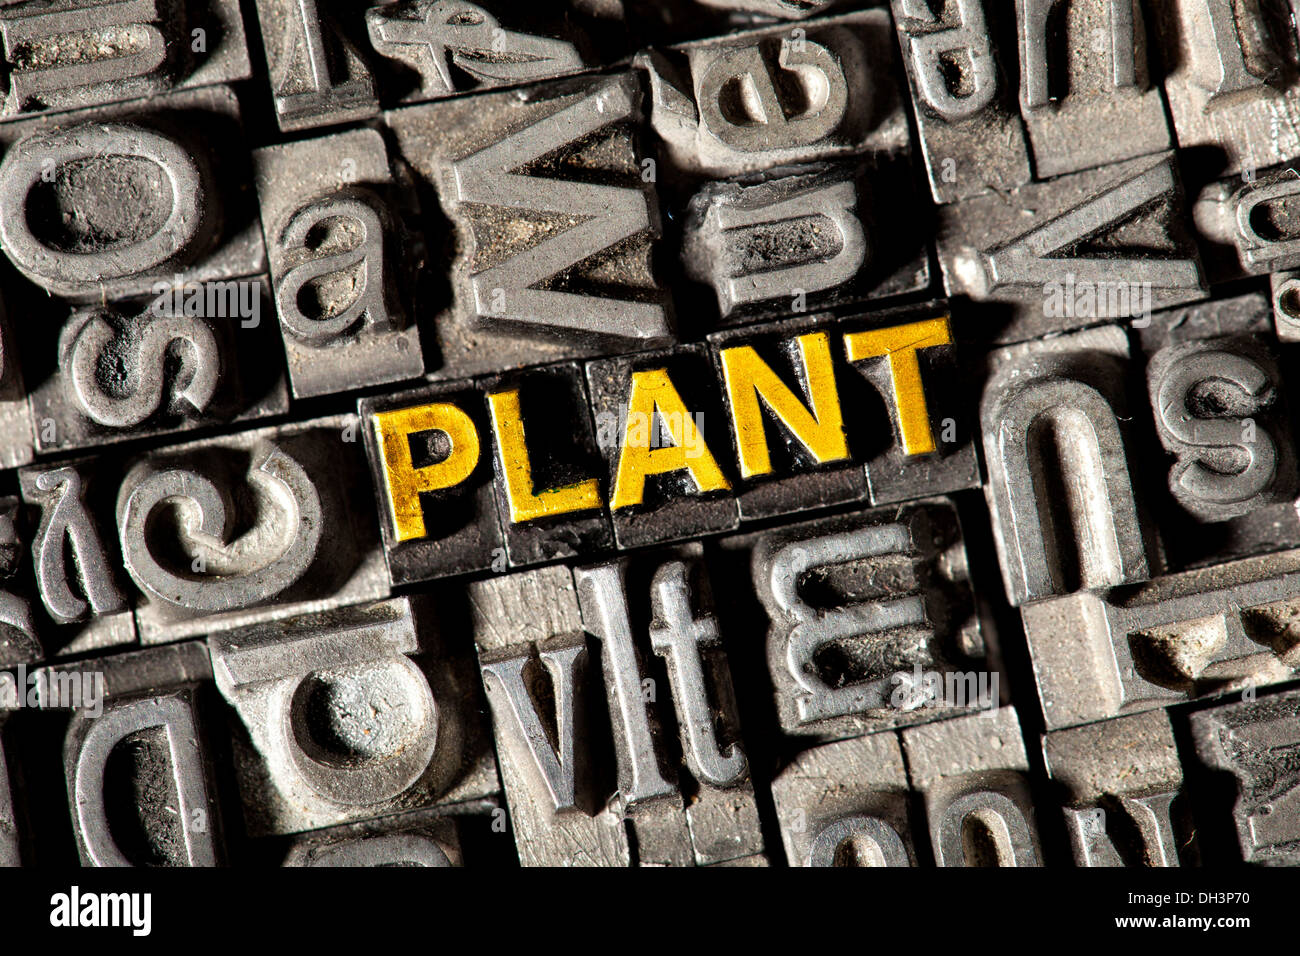 Old lead letters forming the word PLANT - Stock Image